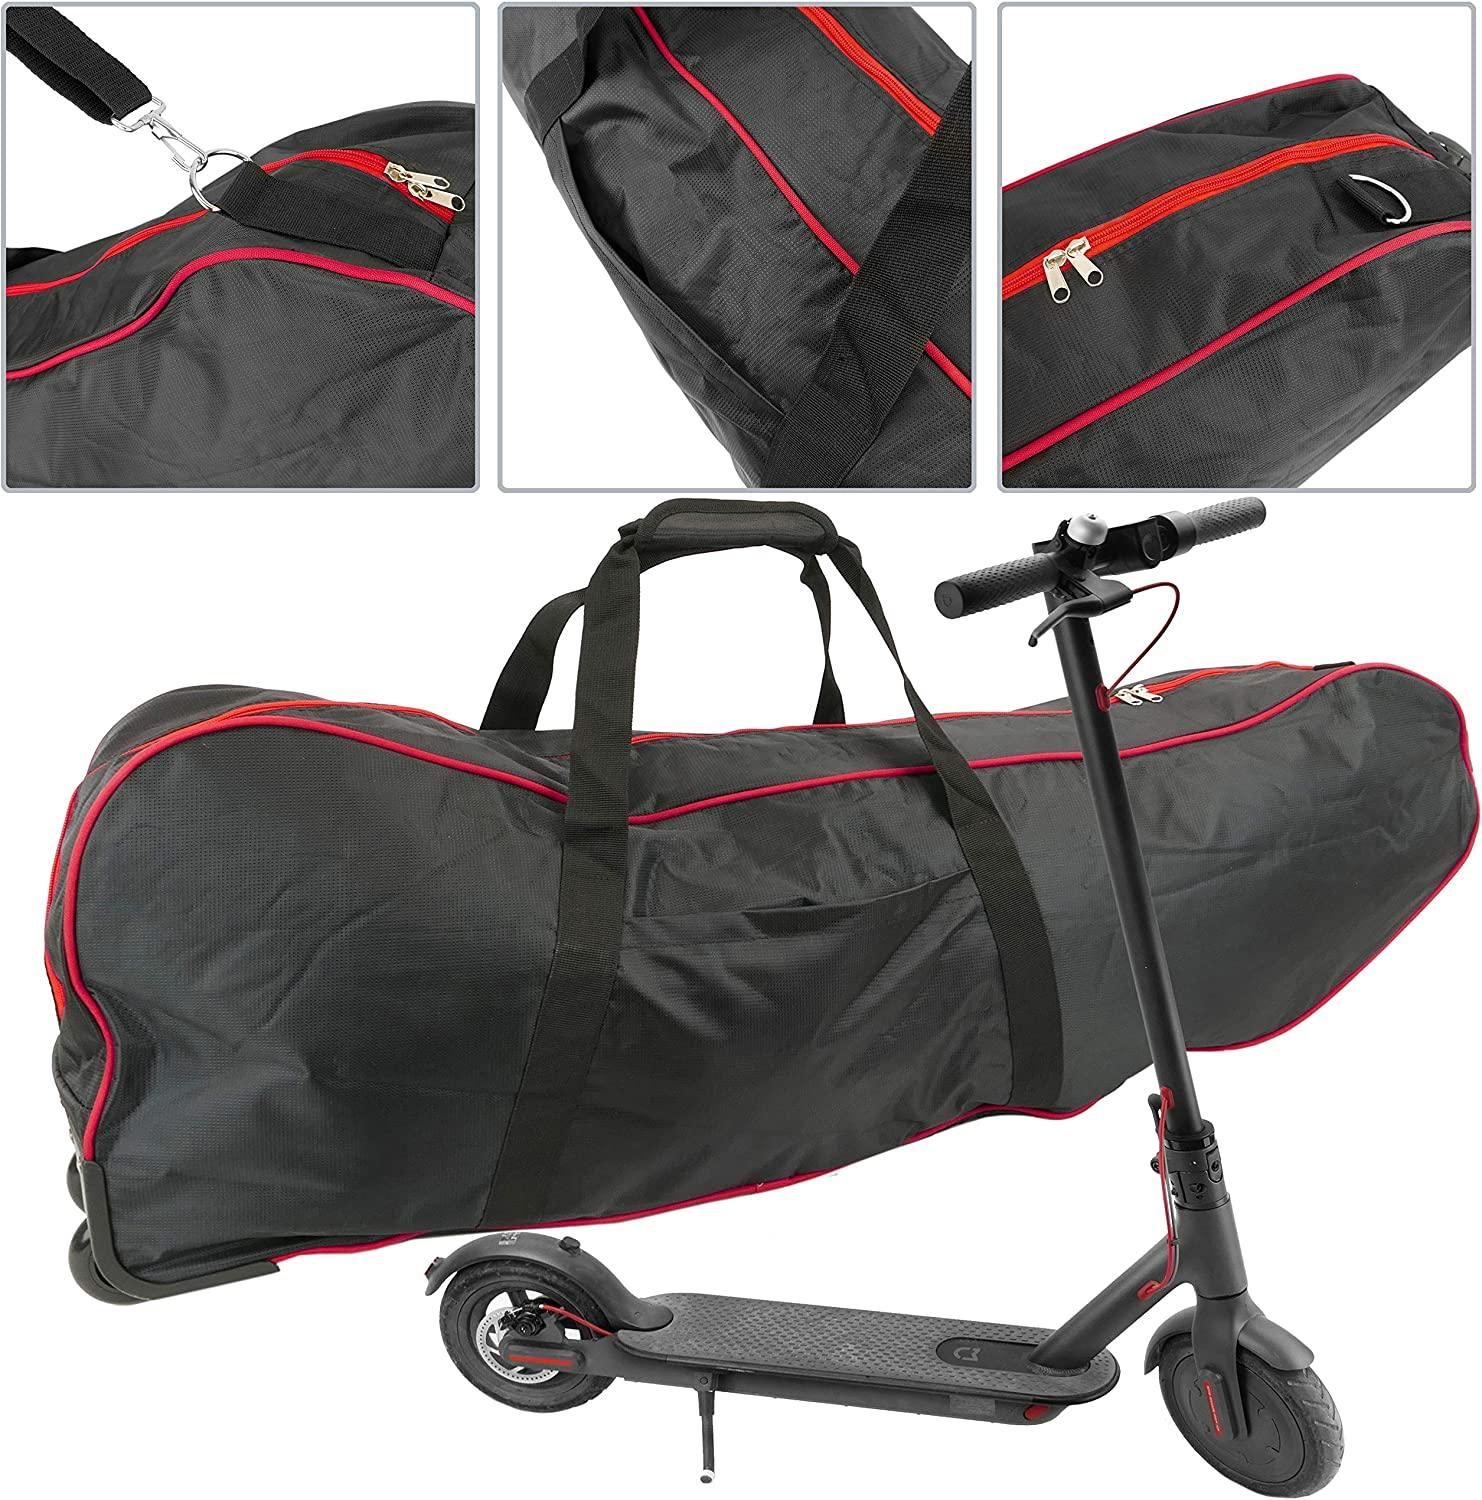 BK065 Unisex CityBAG BK065-VCES Bag for Scooter with Wheels 10 Inch Trolley Type Black Adults English